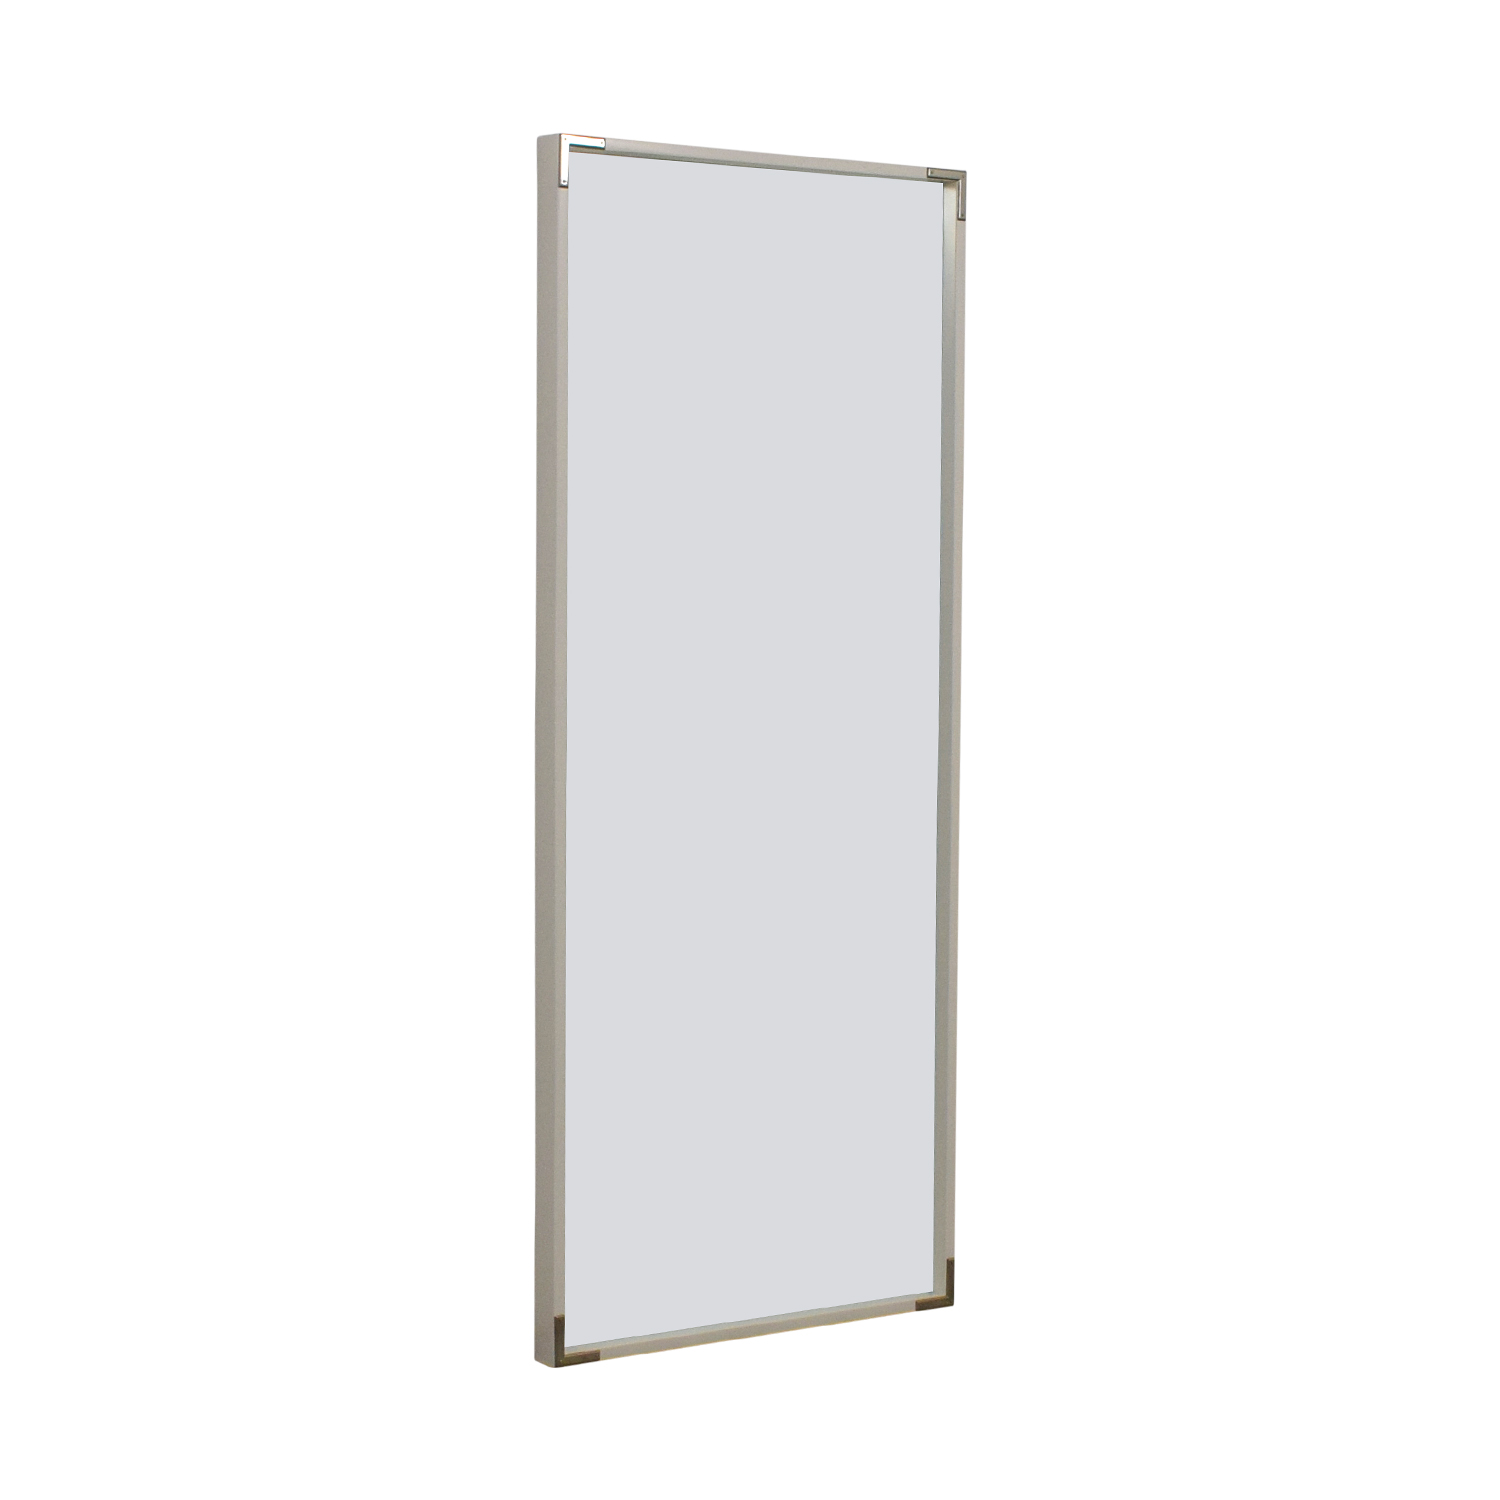 West Elm West Elm White Framed Floor Mirror price